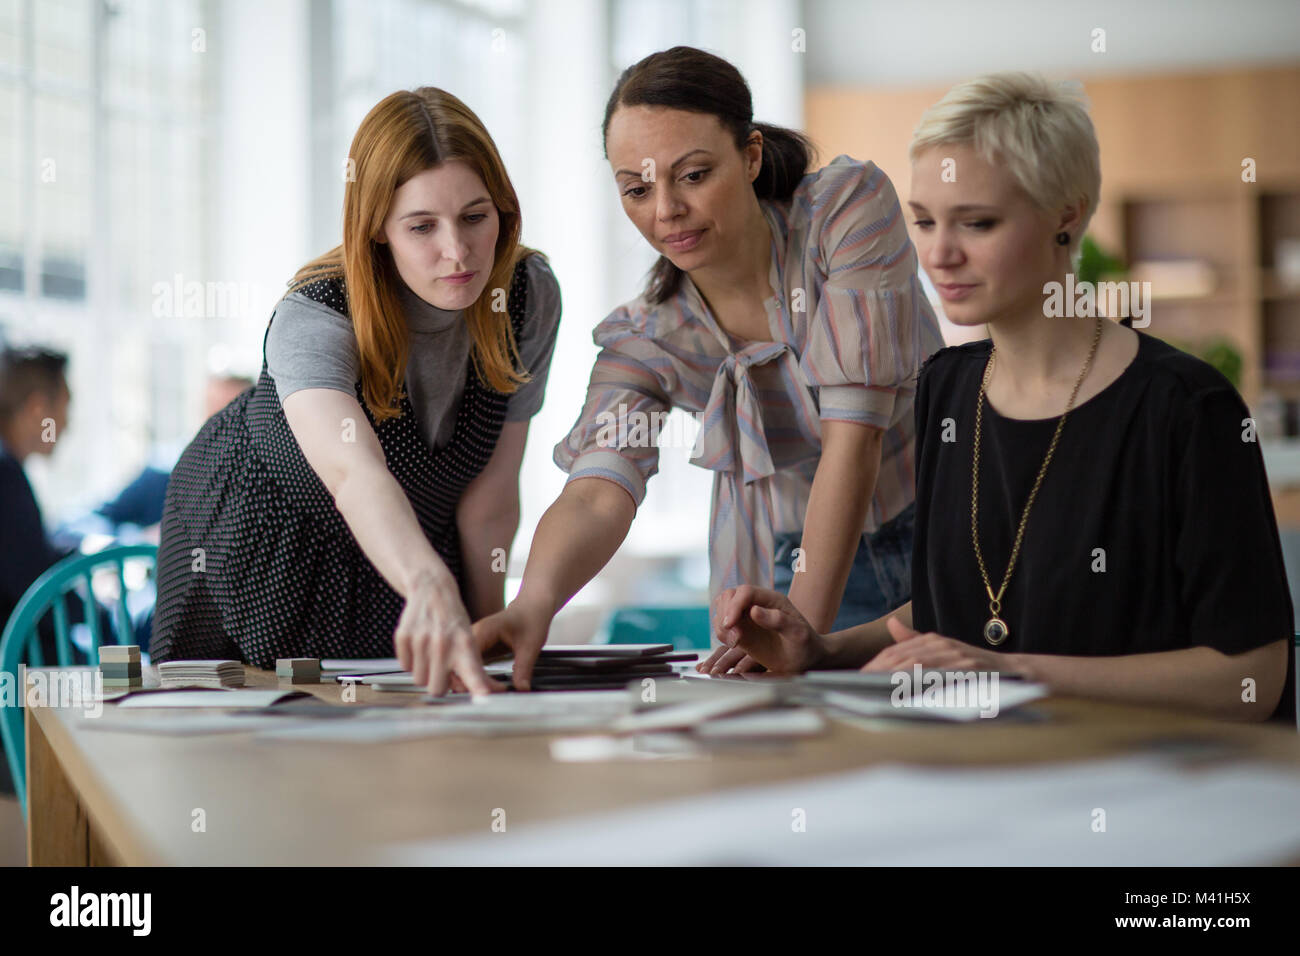 Female coworkers working on a project - Stock Image